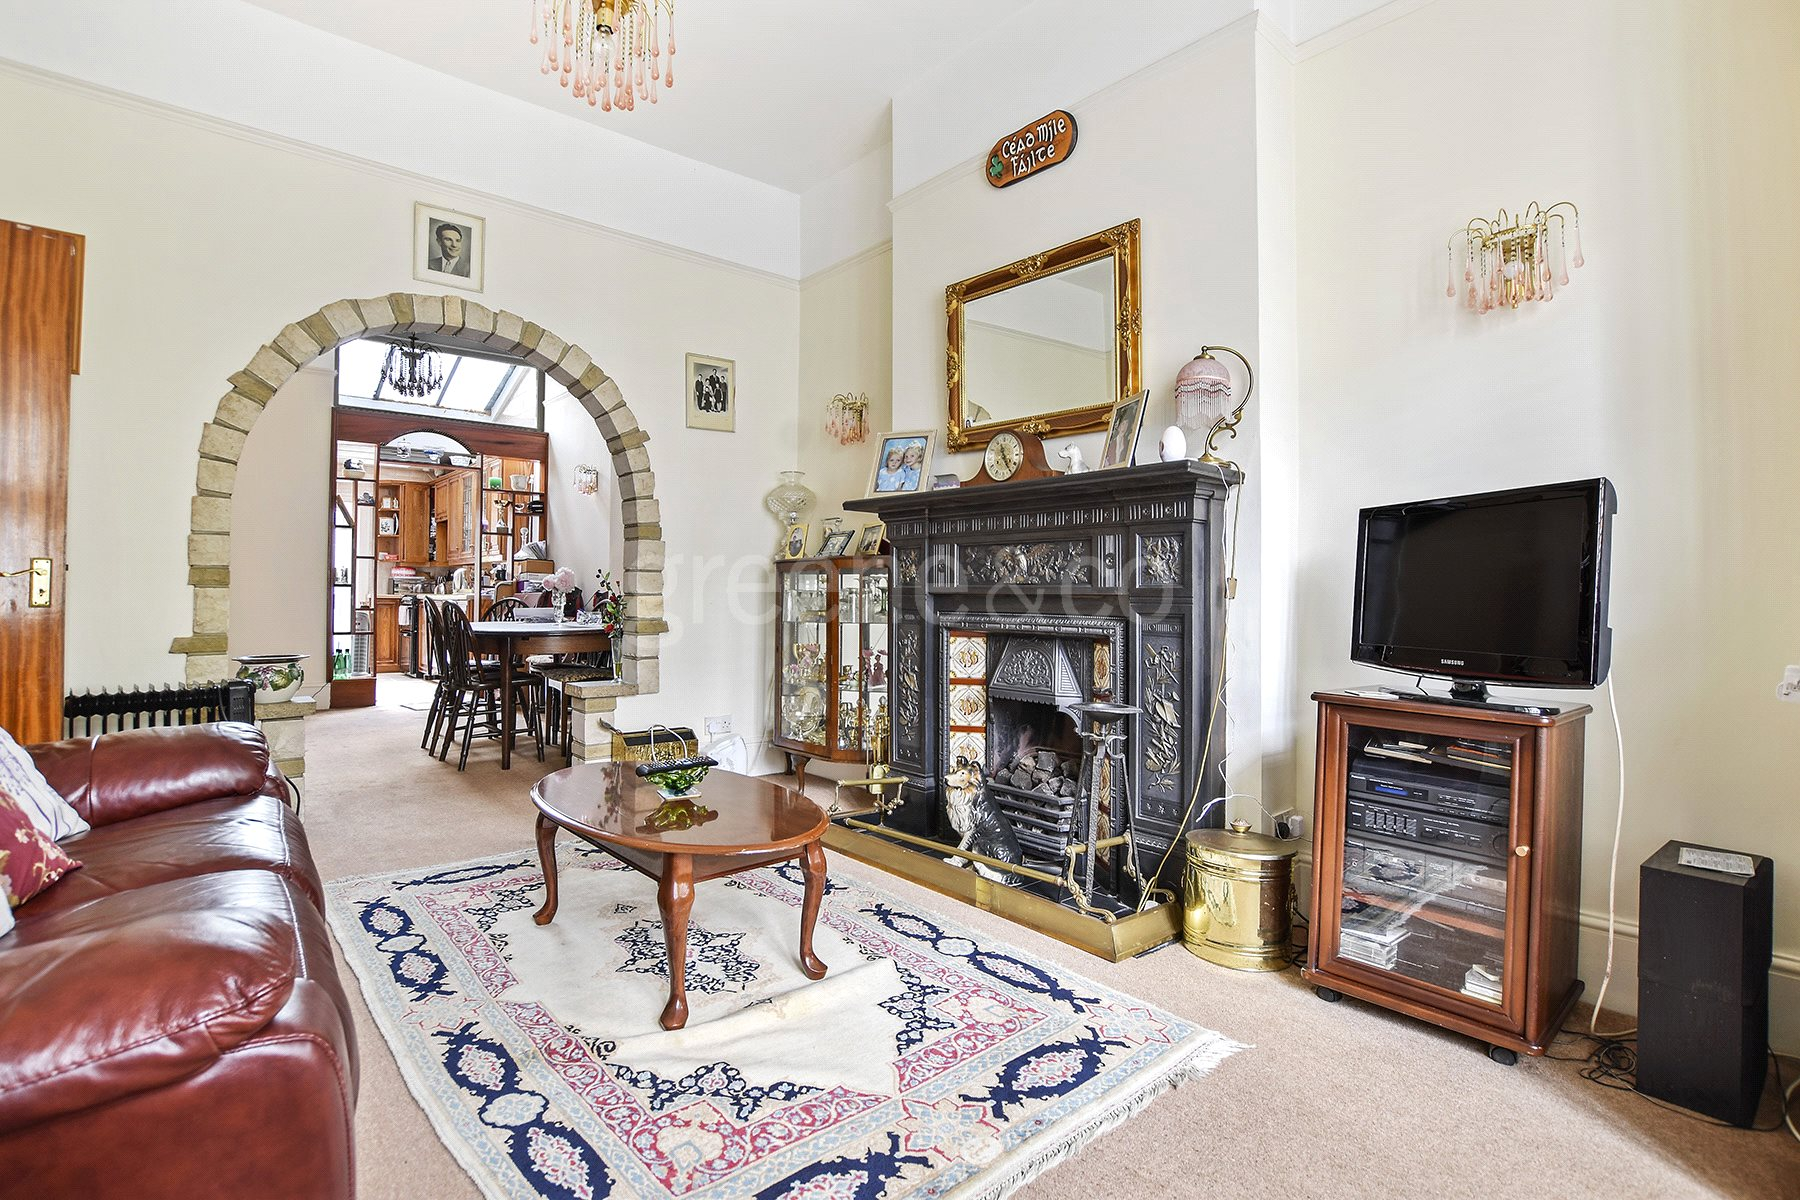 5 Bedrooms Terraced House for sale in Gladsmuir Road, Whitehall Conservation, Archway, London, N19